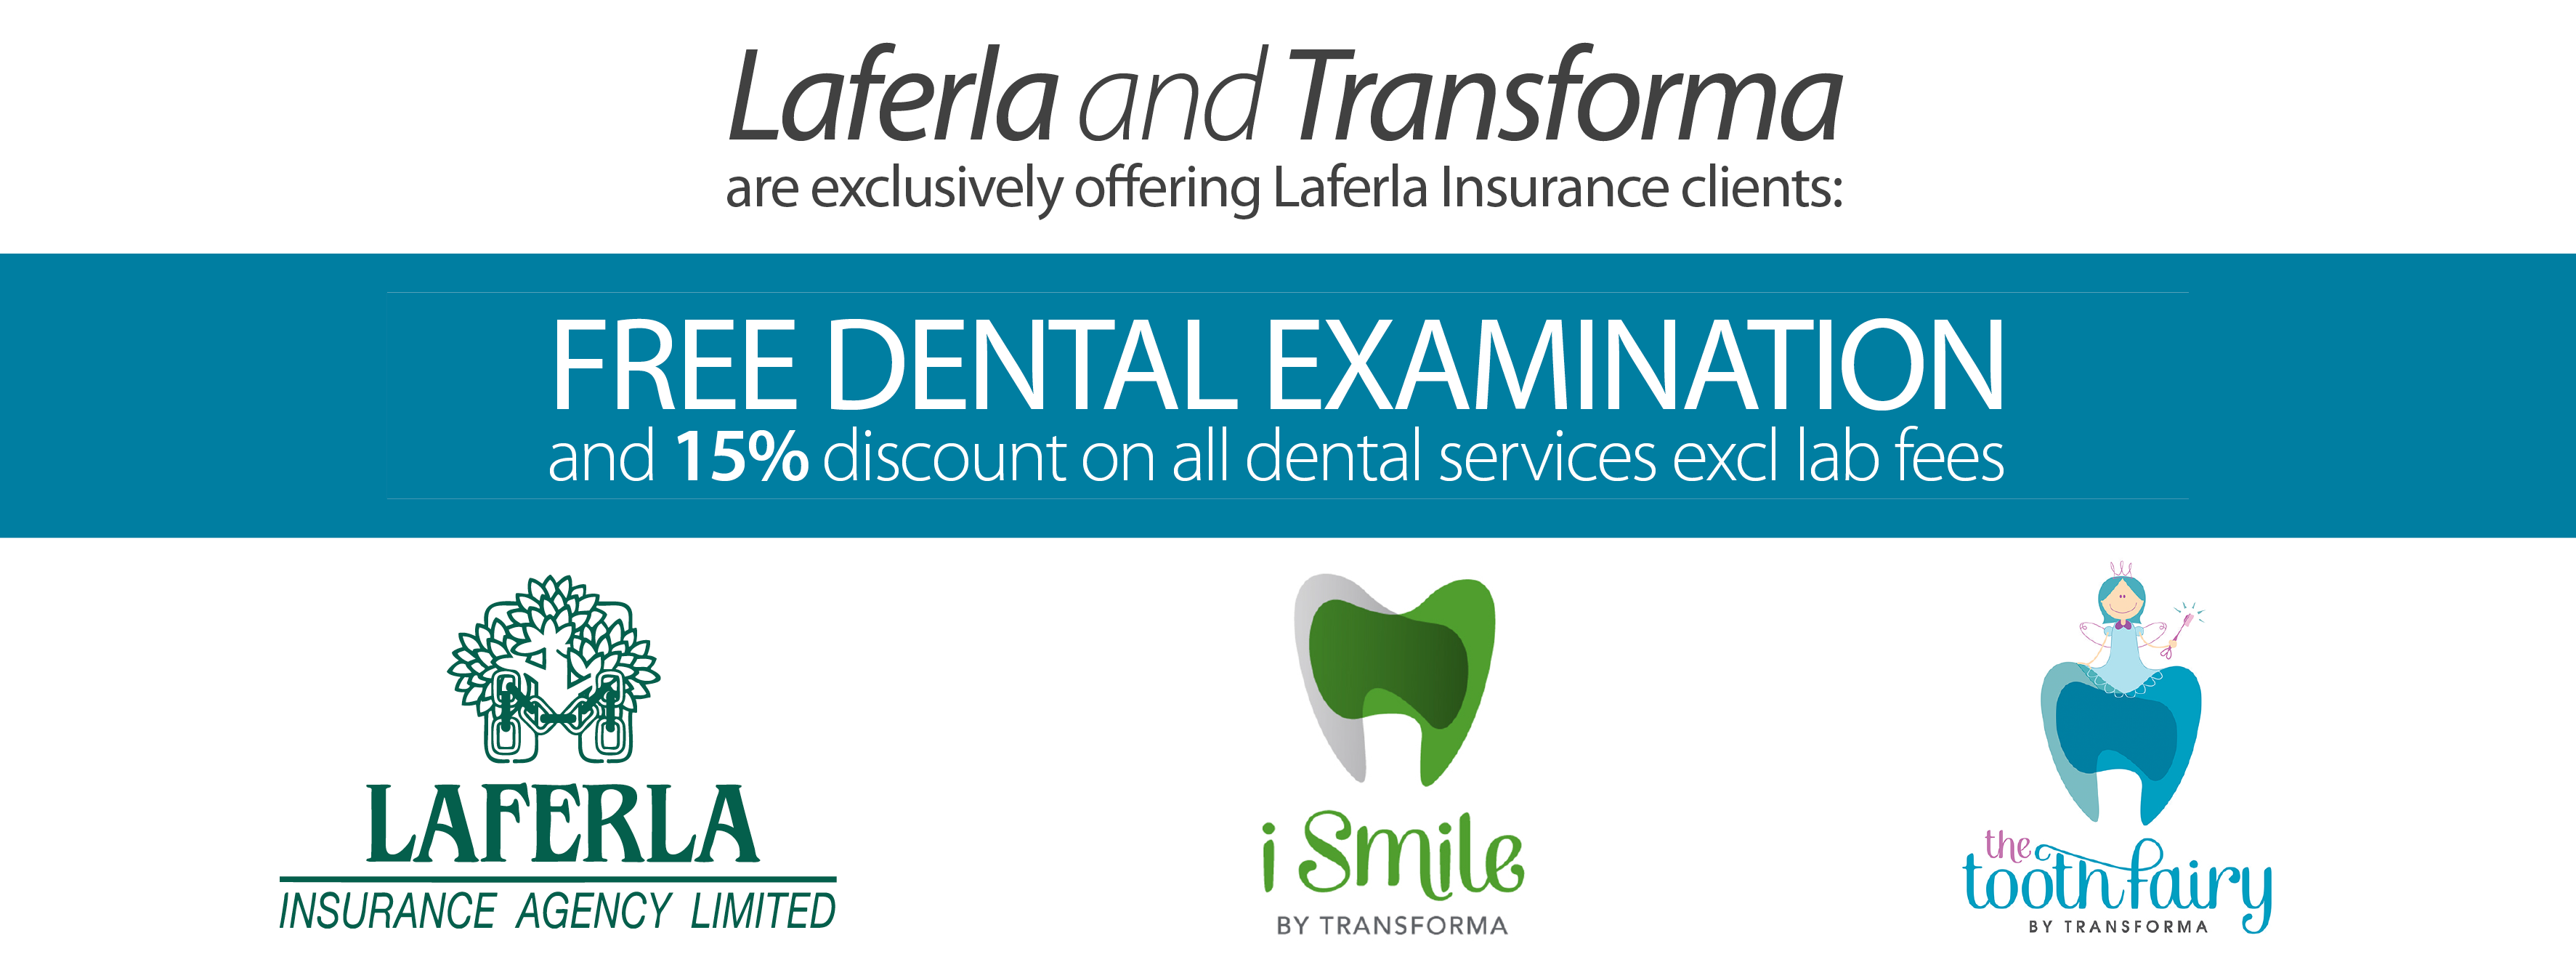 New Offer to Laferla Insurance Clients